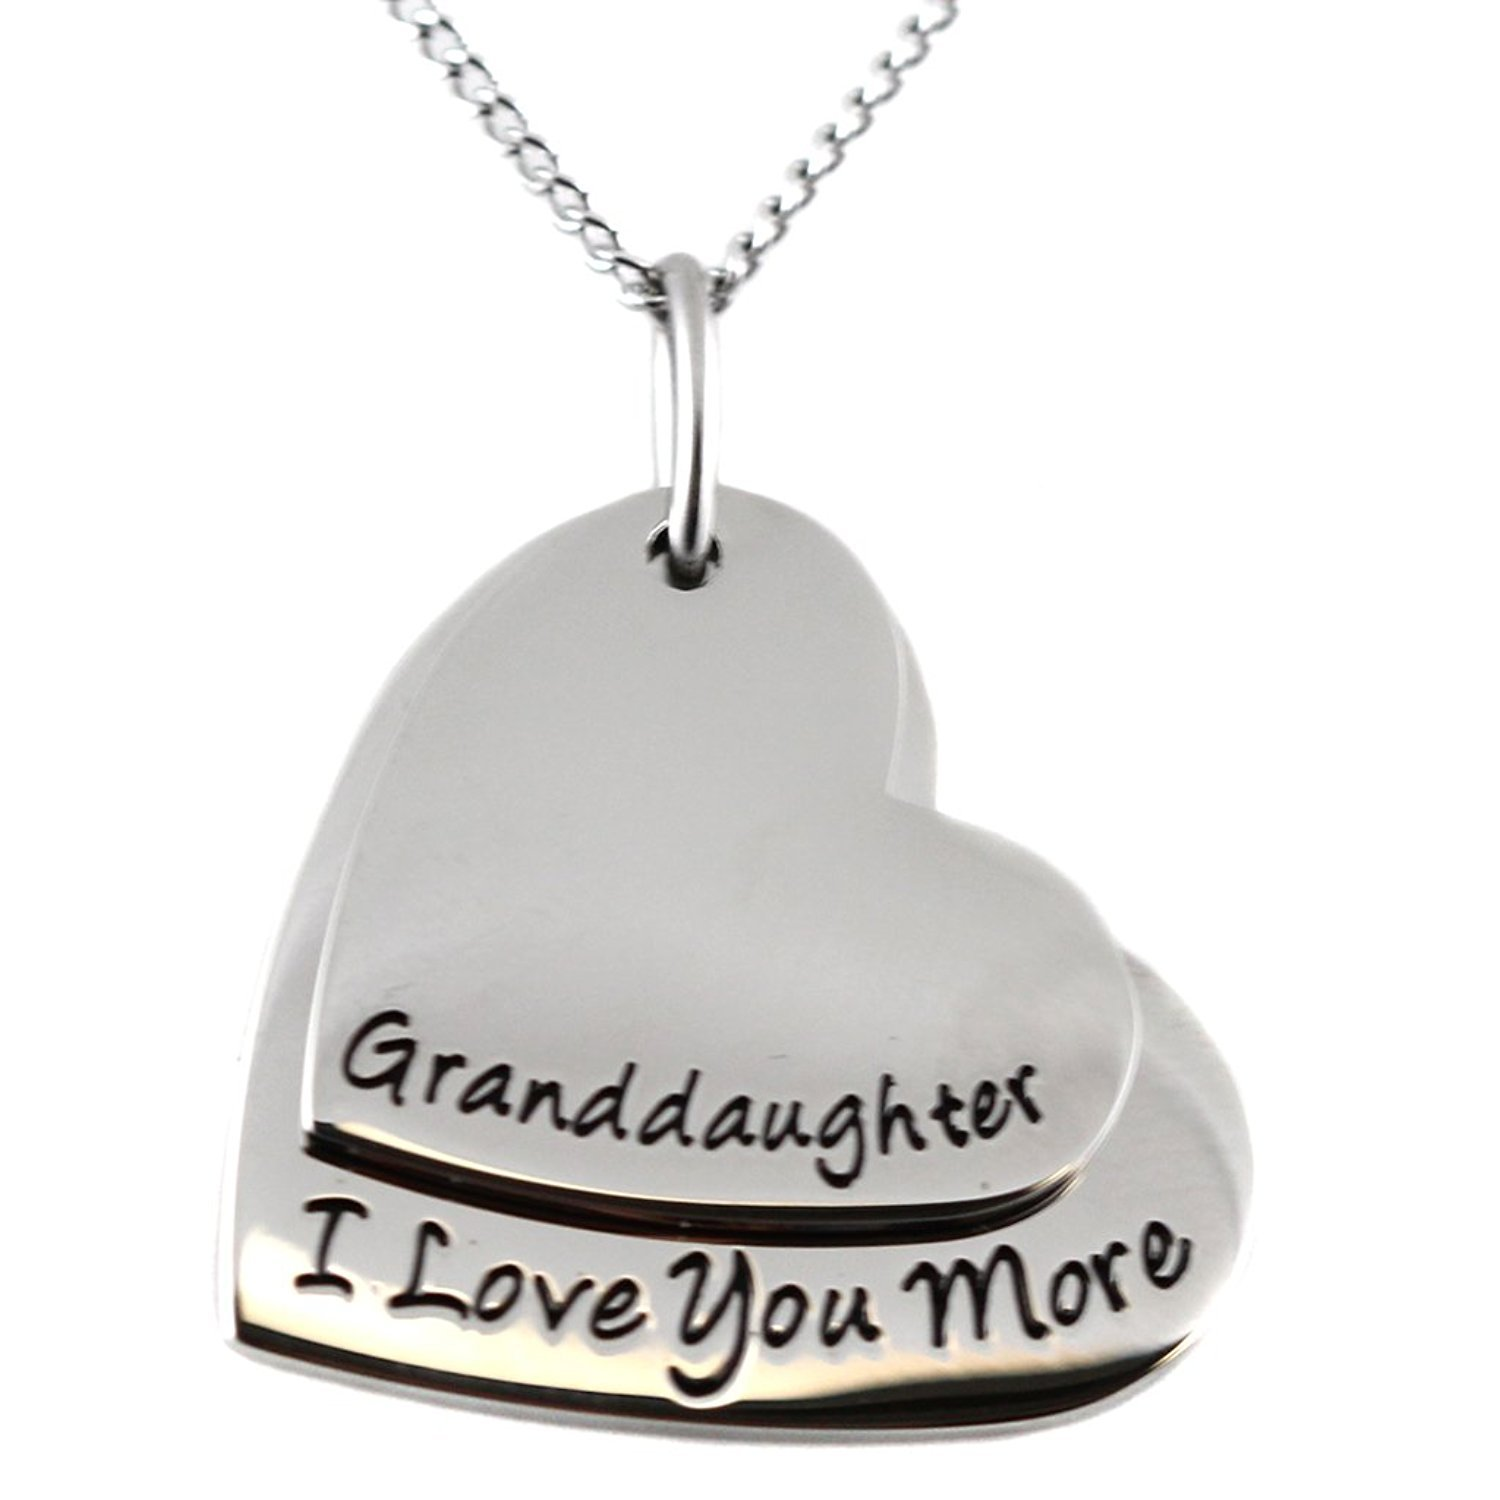 'Granddaughter, I Love You More' Pendant Necklace by Steal My Heart (Image #1)